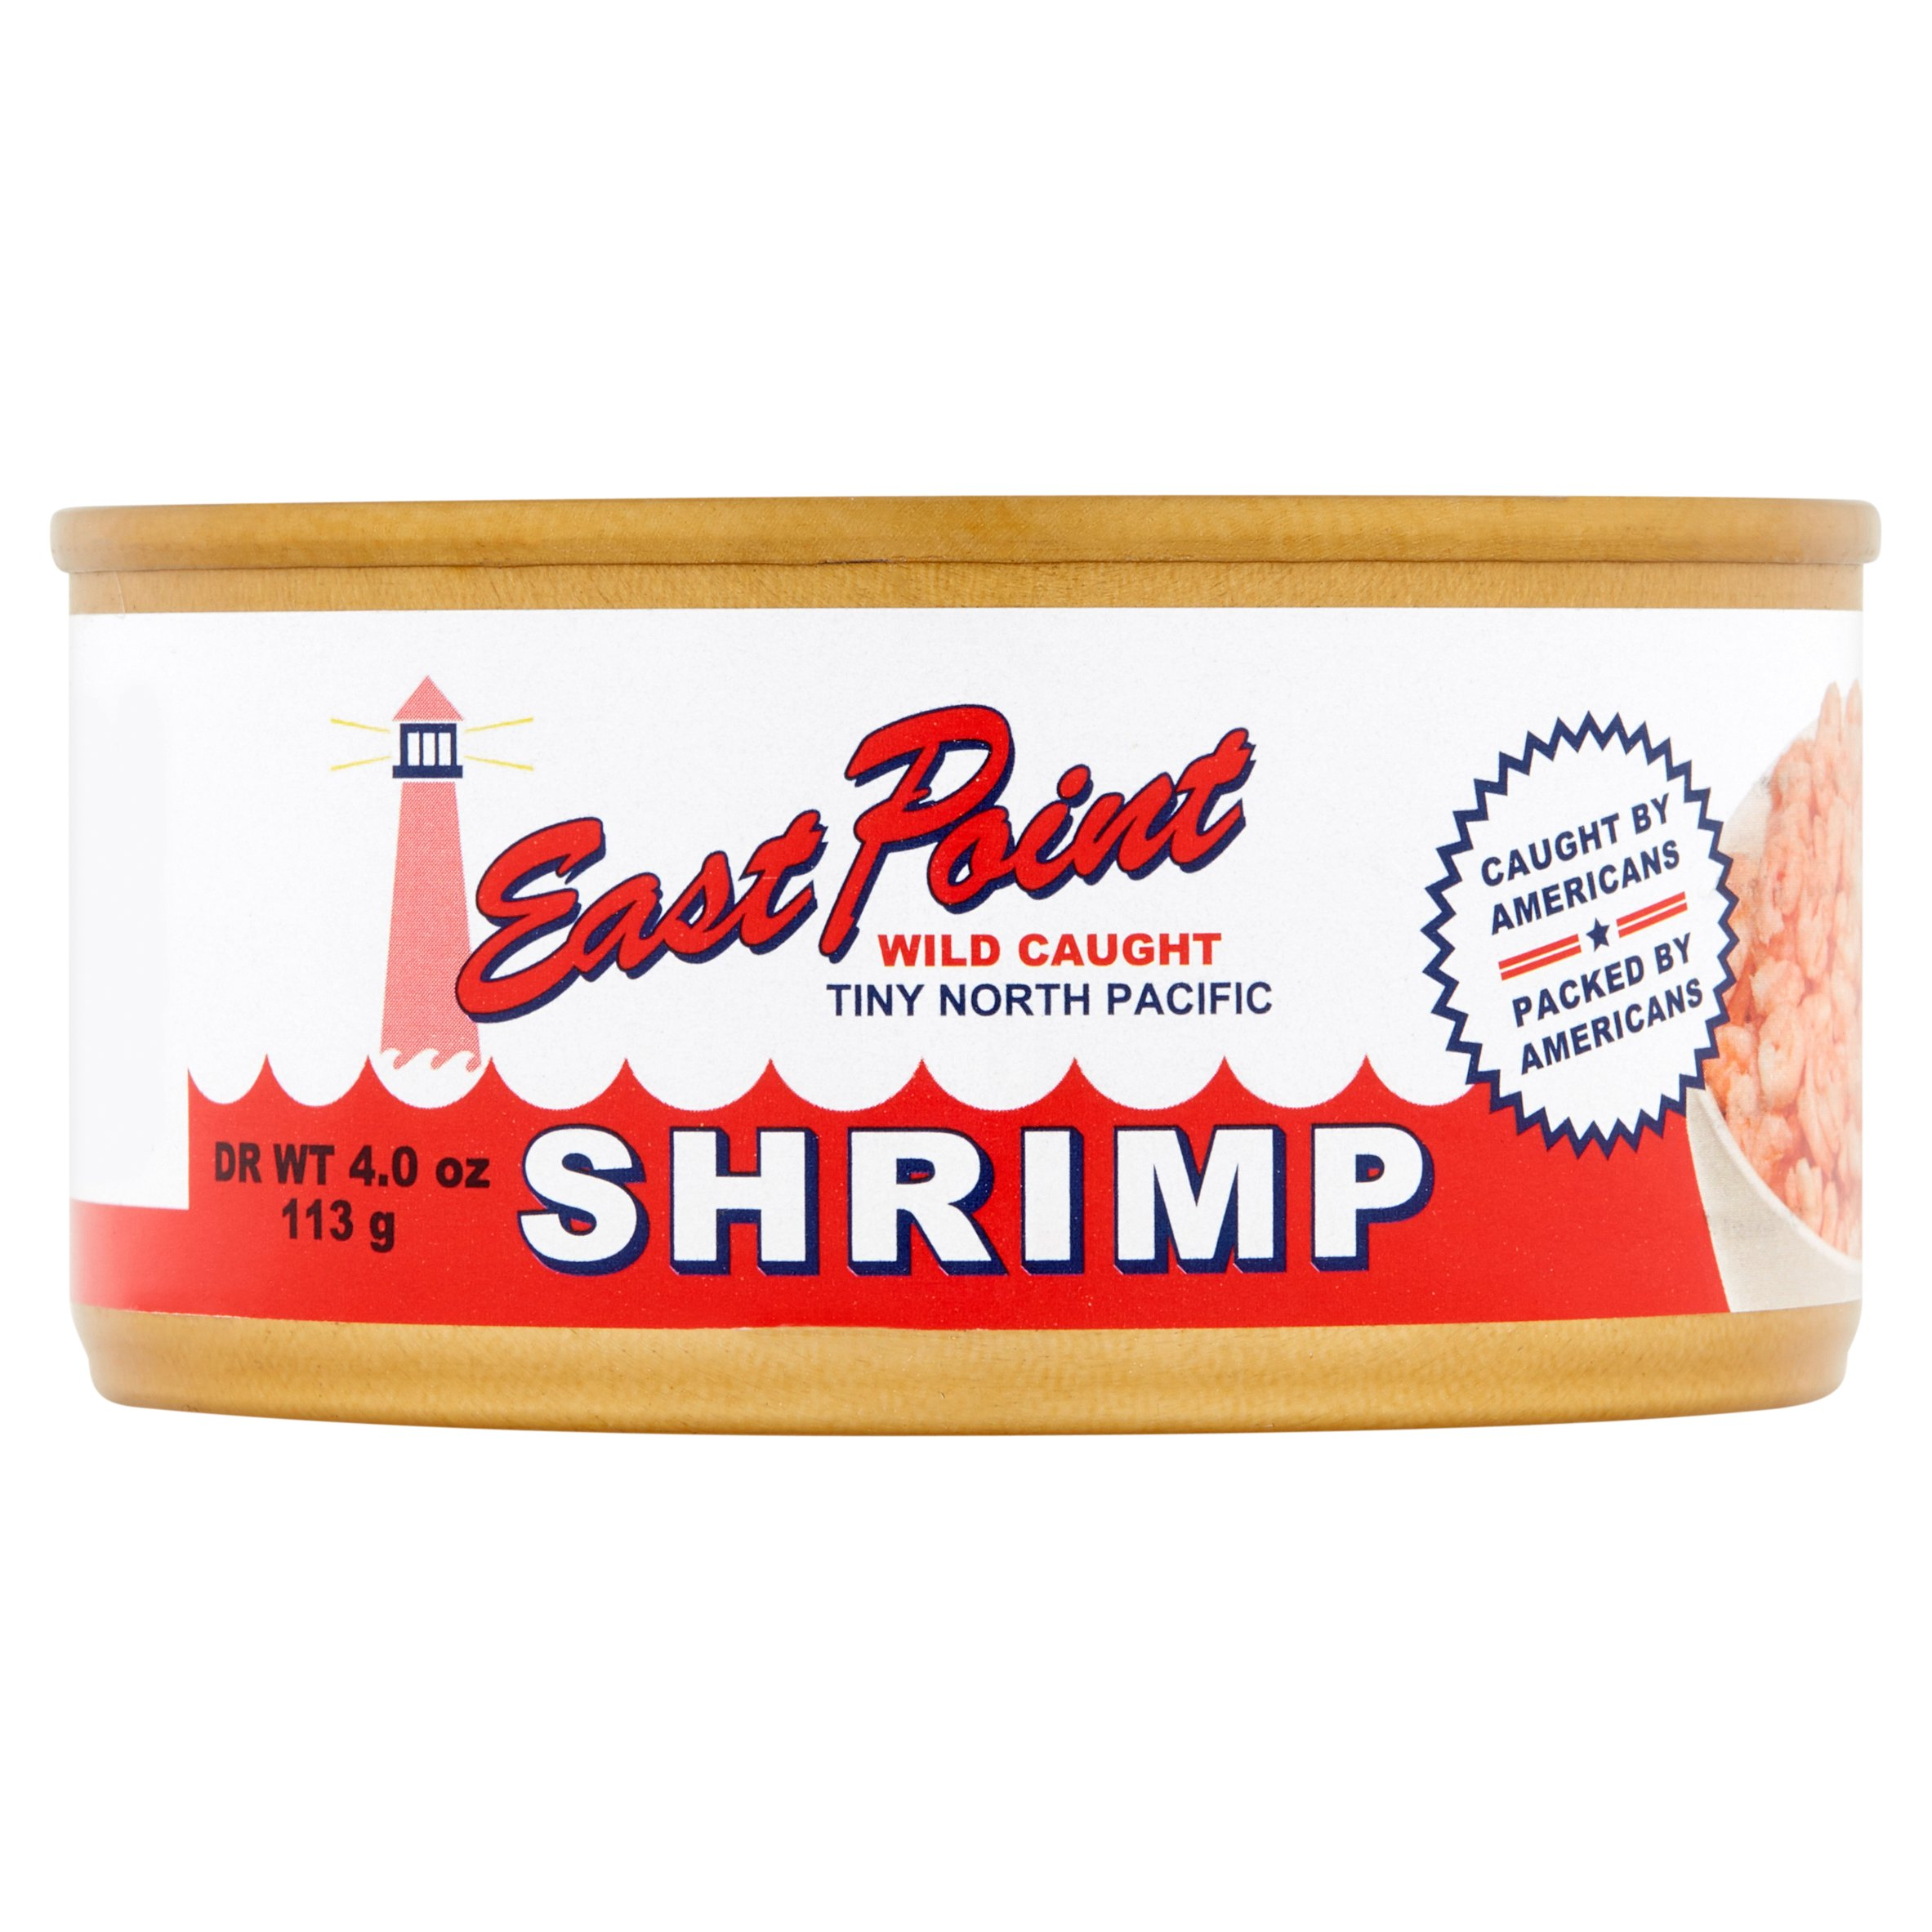 East Point Wild Caught Tiny North Pacific Shrimp, 4.0 oz by Custom Seafood Services, Inc.